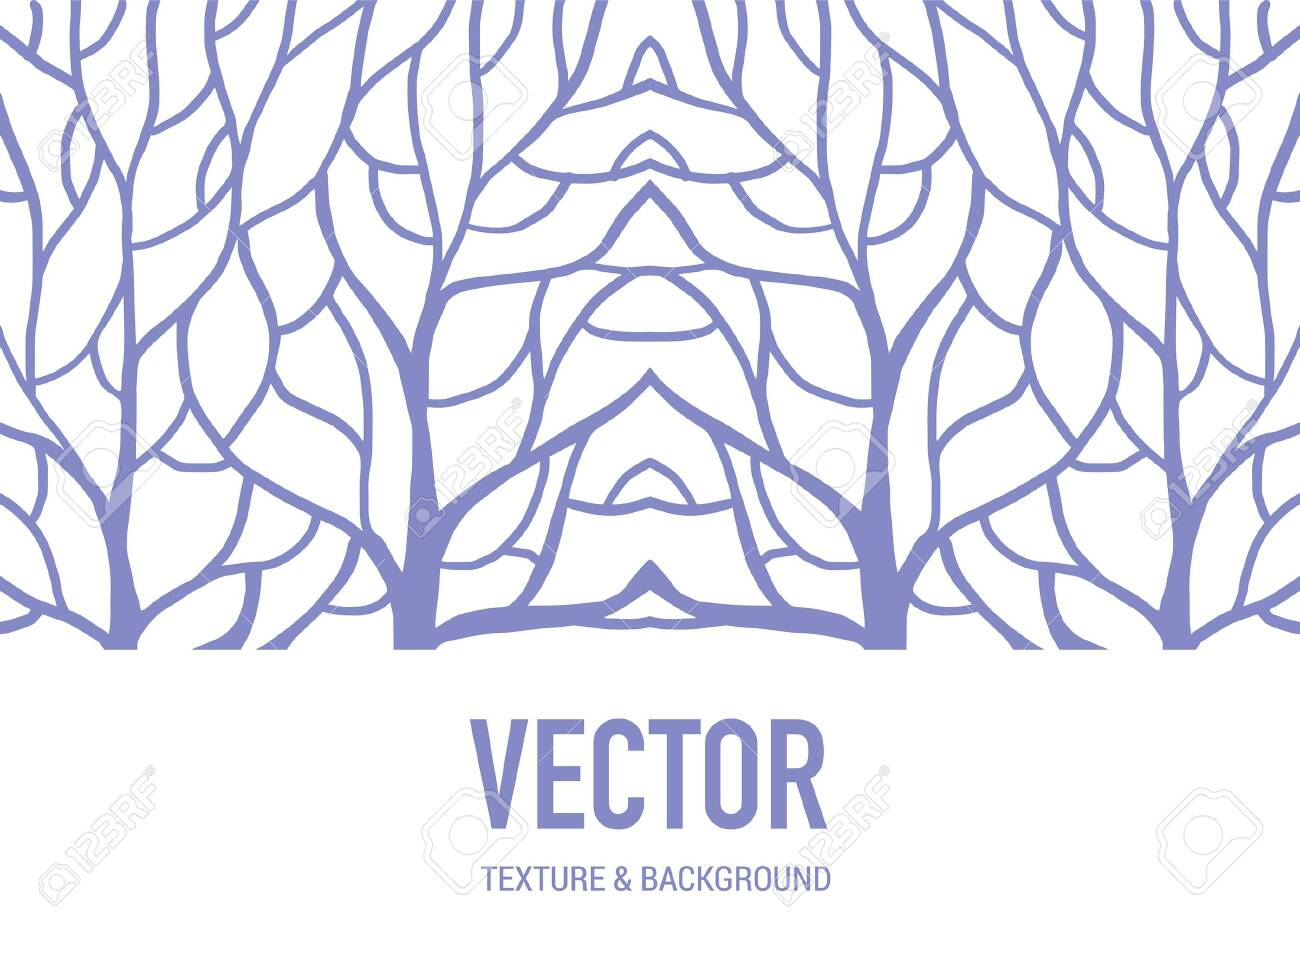 Background the wood grain and root that combines with graphic art to be a artwork and print pattern, fabric pattern or tie dye. - 123528840